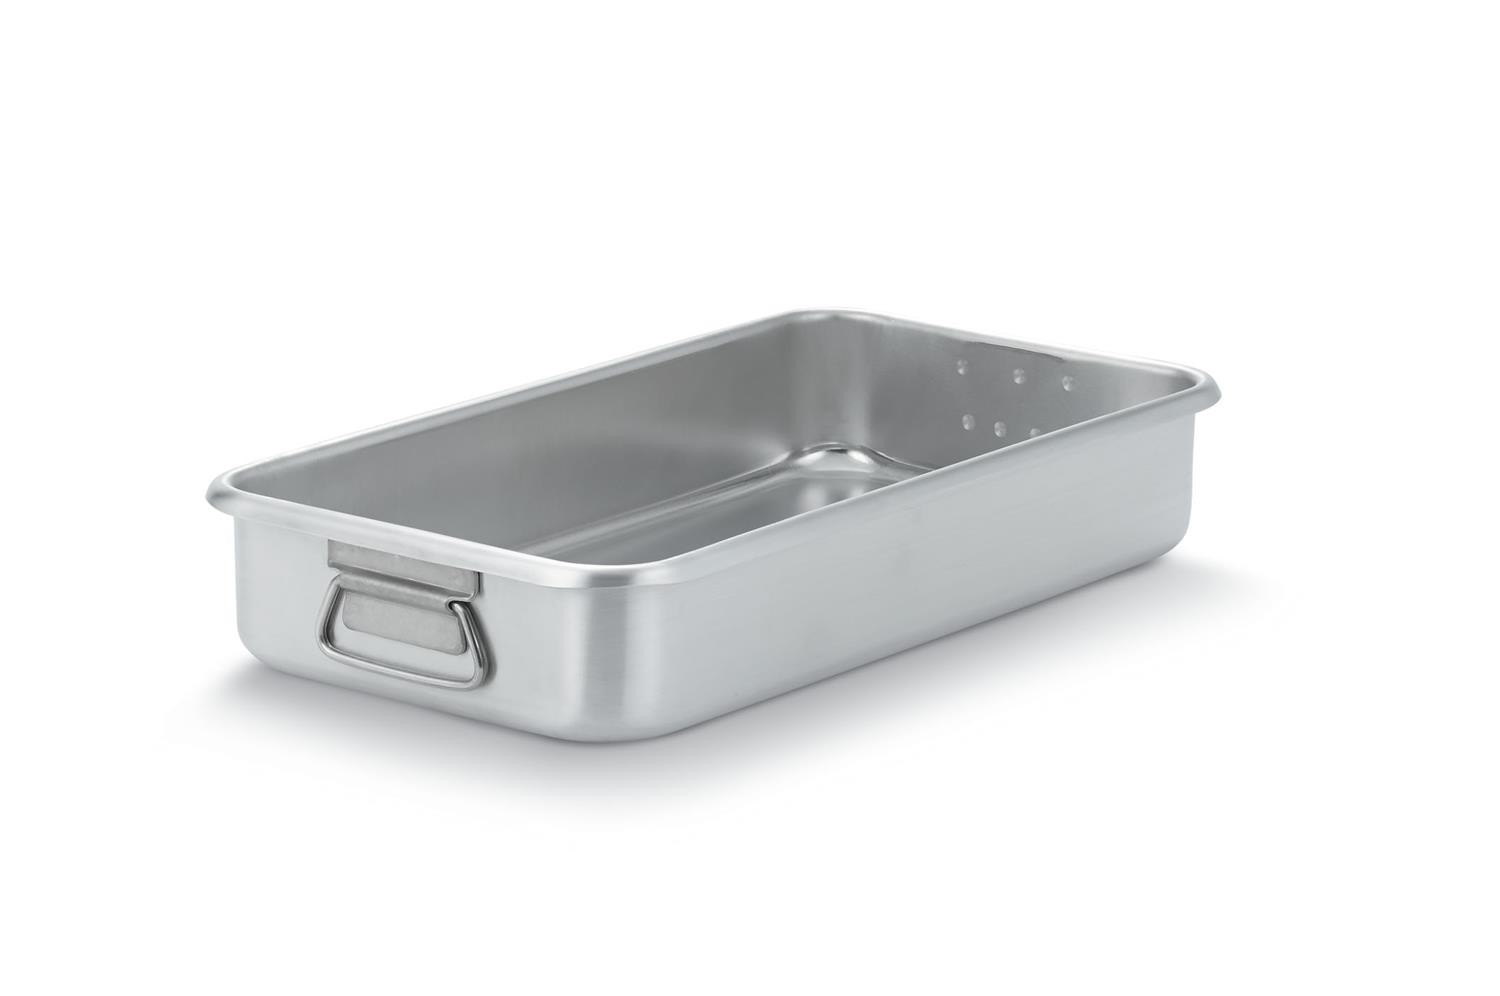 Vollrath 68366 Aluminum Roasting Pan Bottom 11.75 Qt.